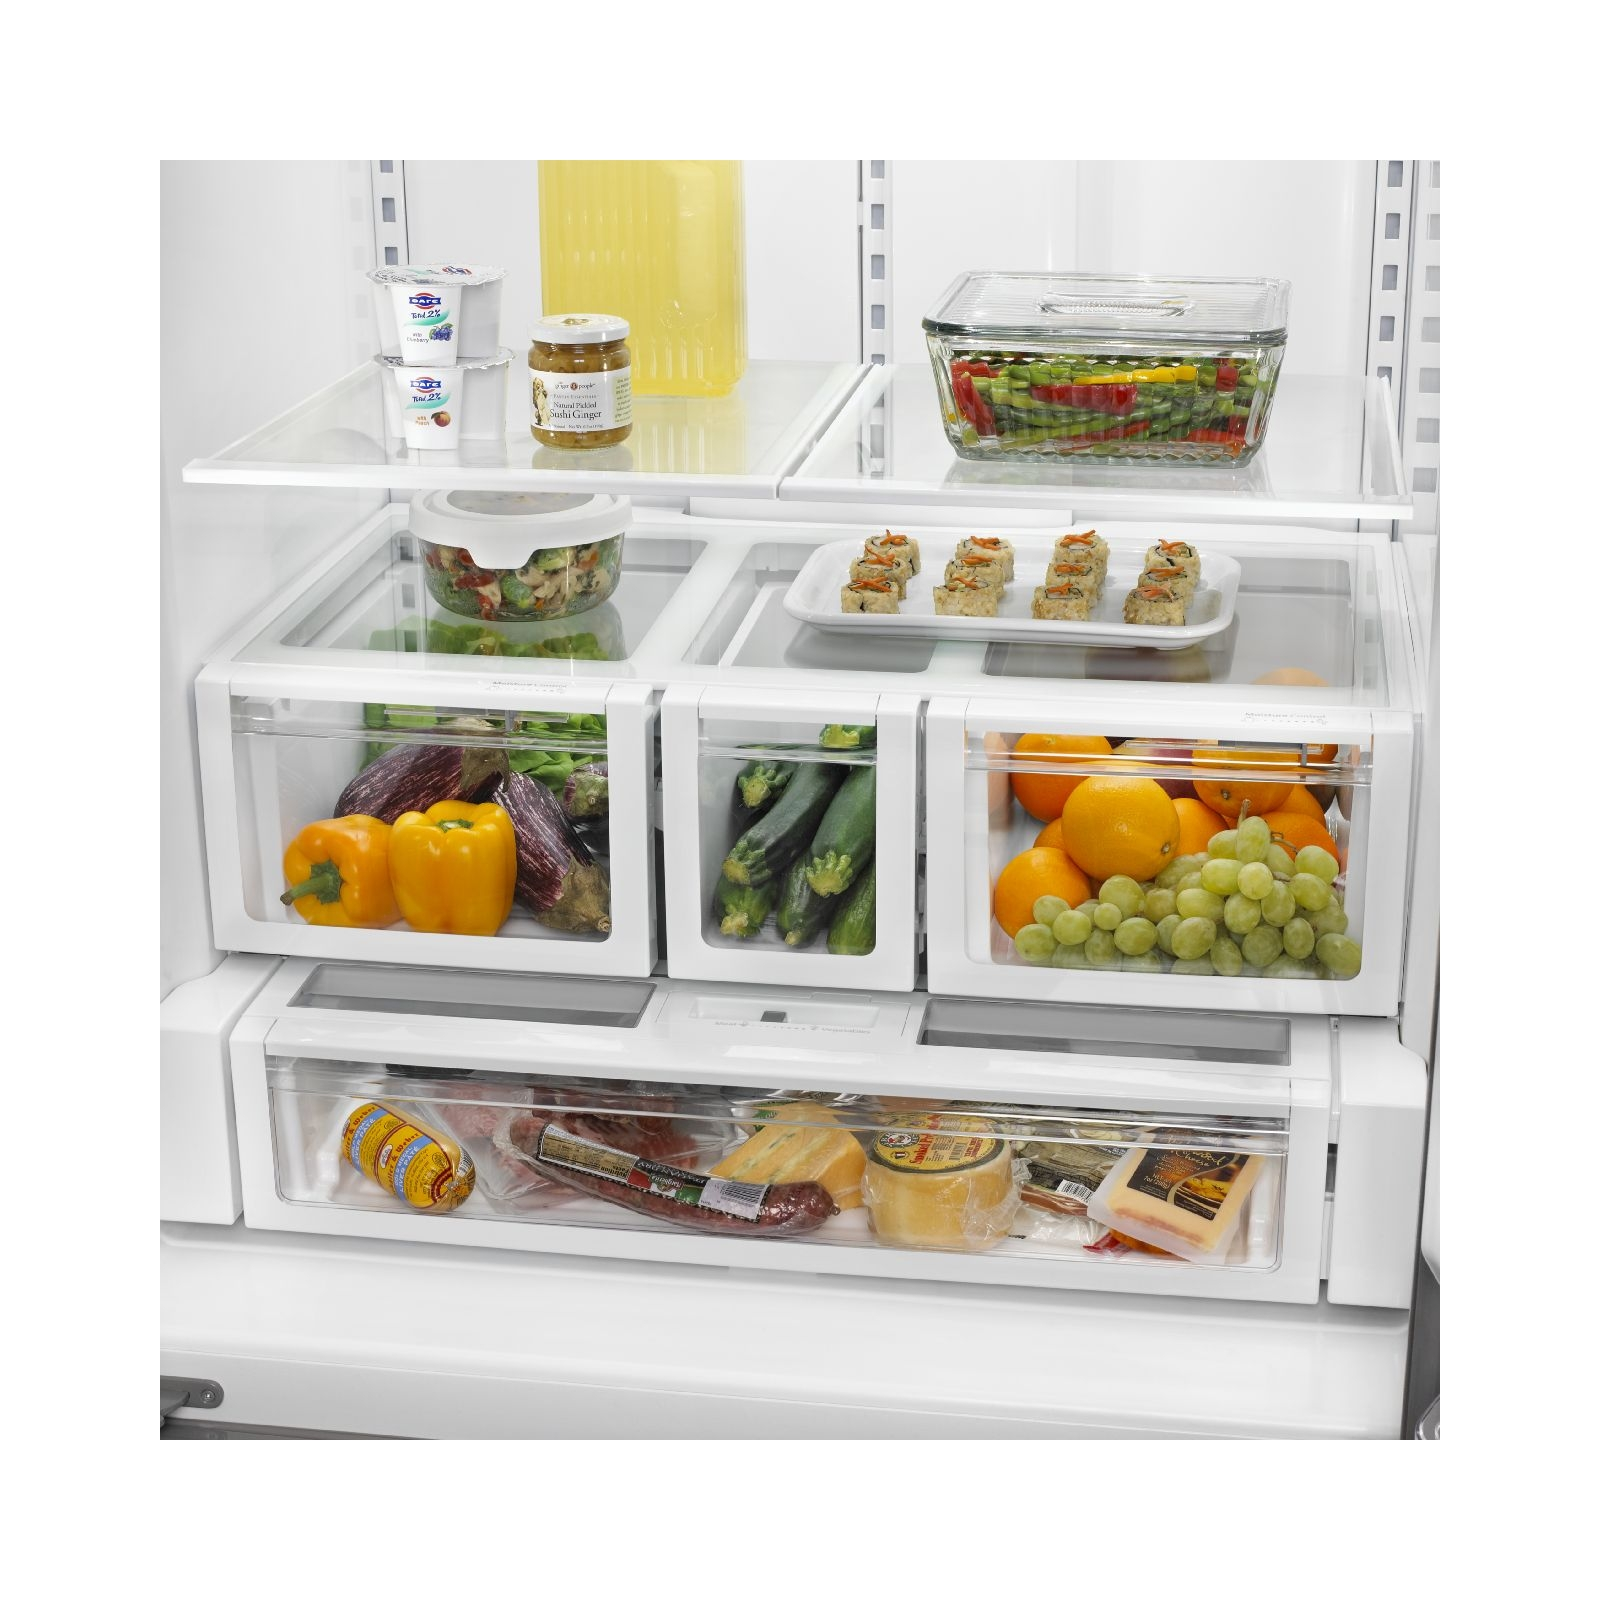 Whirlpool WRF736SDAM 25 cu. ft. French Door Refrigerator w/ MicroEdge Shelves-Stainless Steel